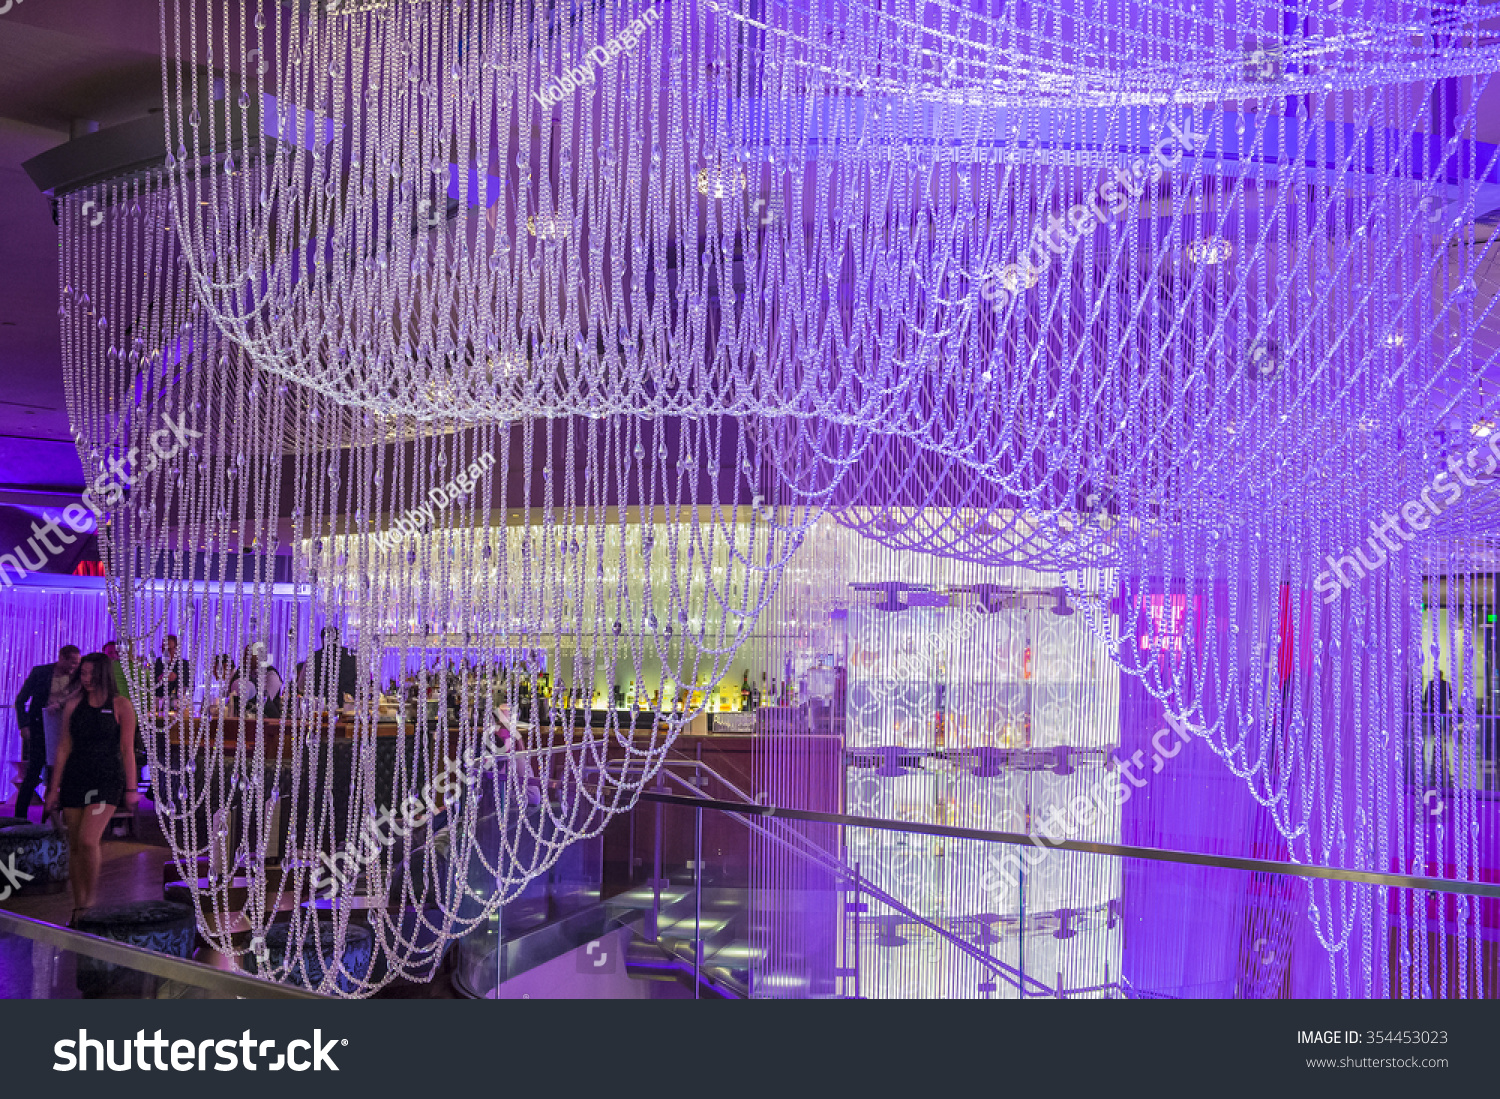 Las vegas dec 18 chandelier bar stock photo 354453023 shutterstock arubaitofo Image collections